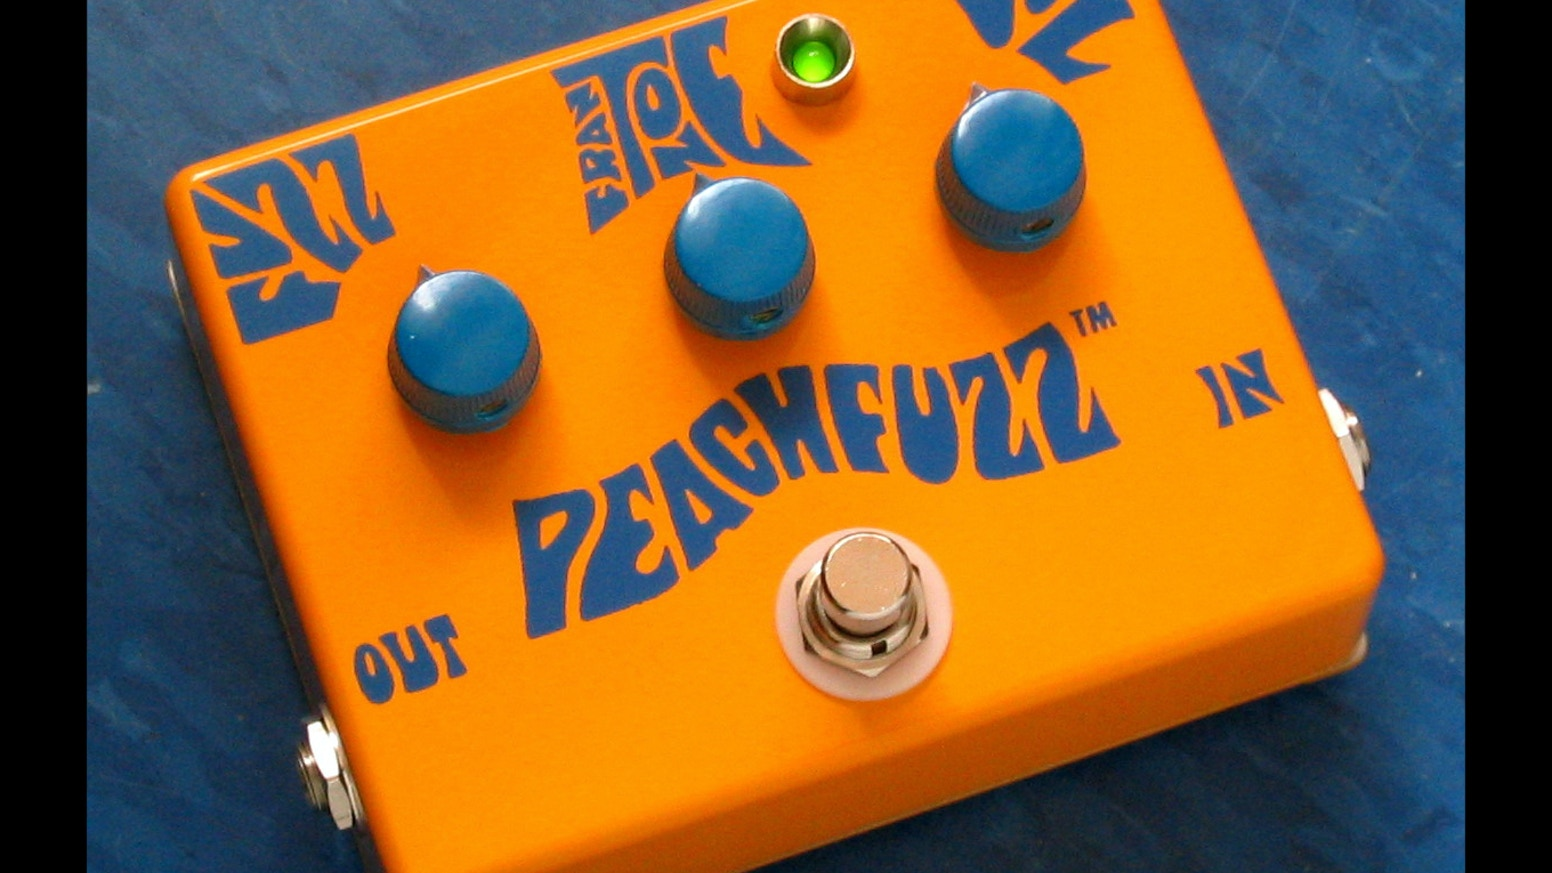 Help restart Frantone by pre-ordering one of the first new Peachfuzz pedals in 6 years!